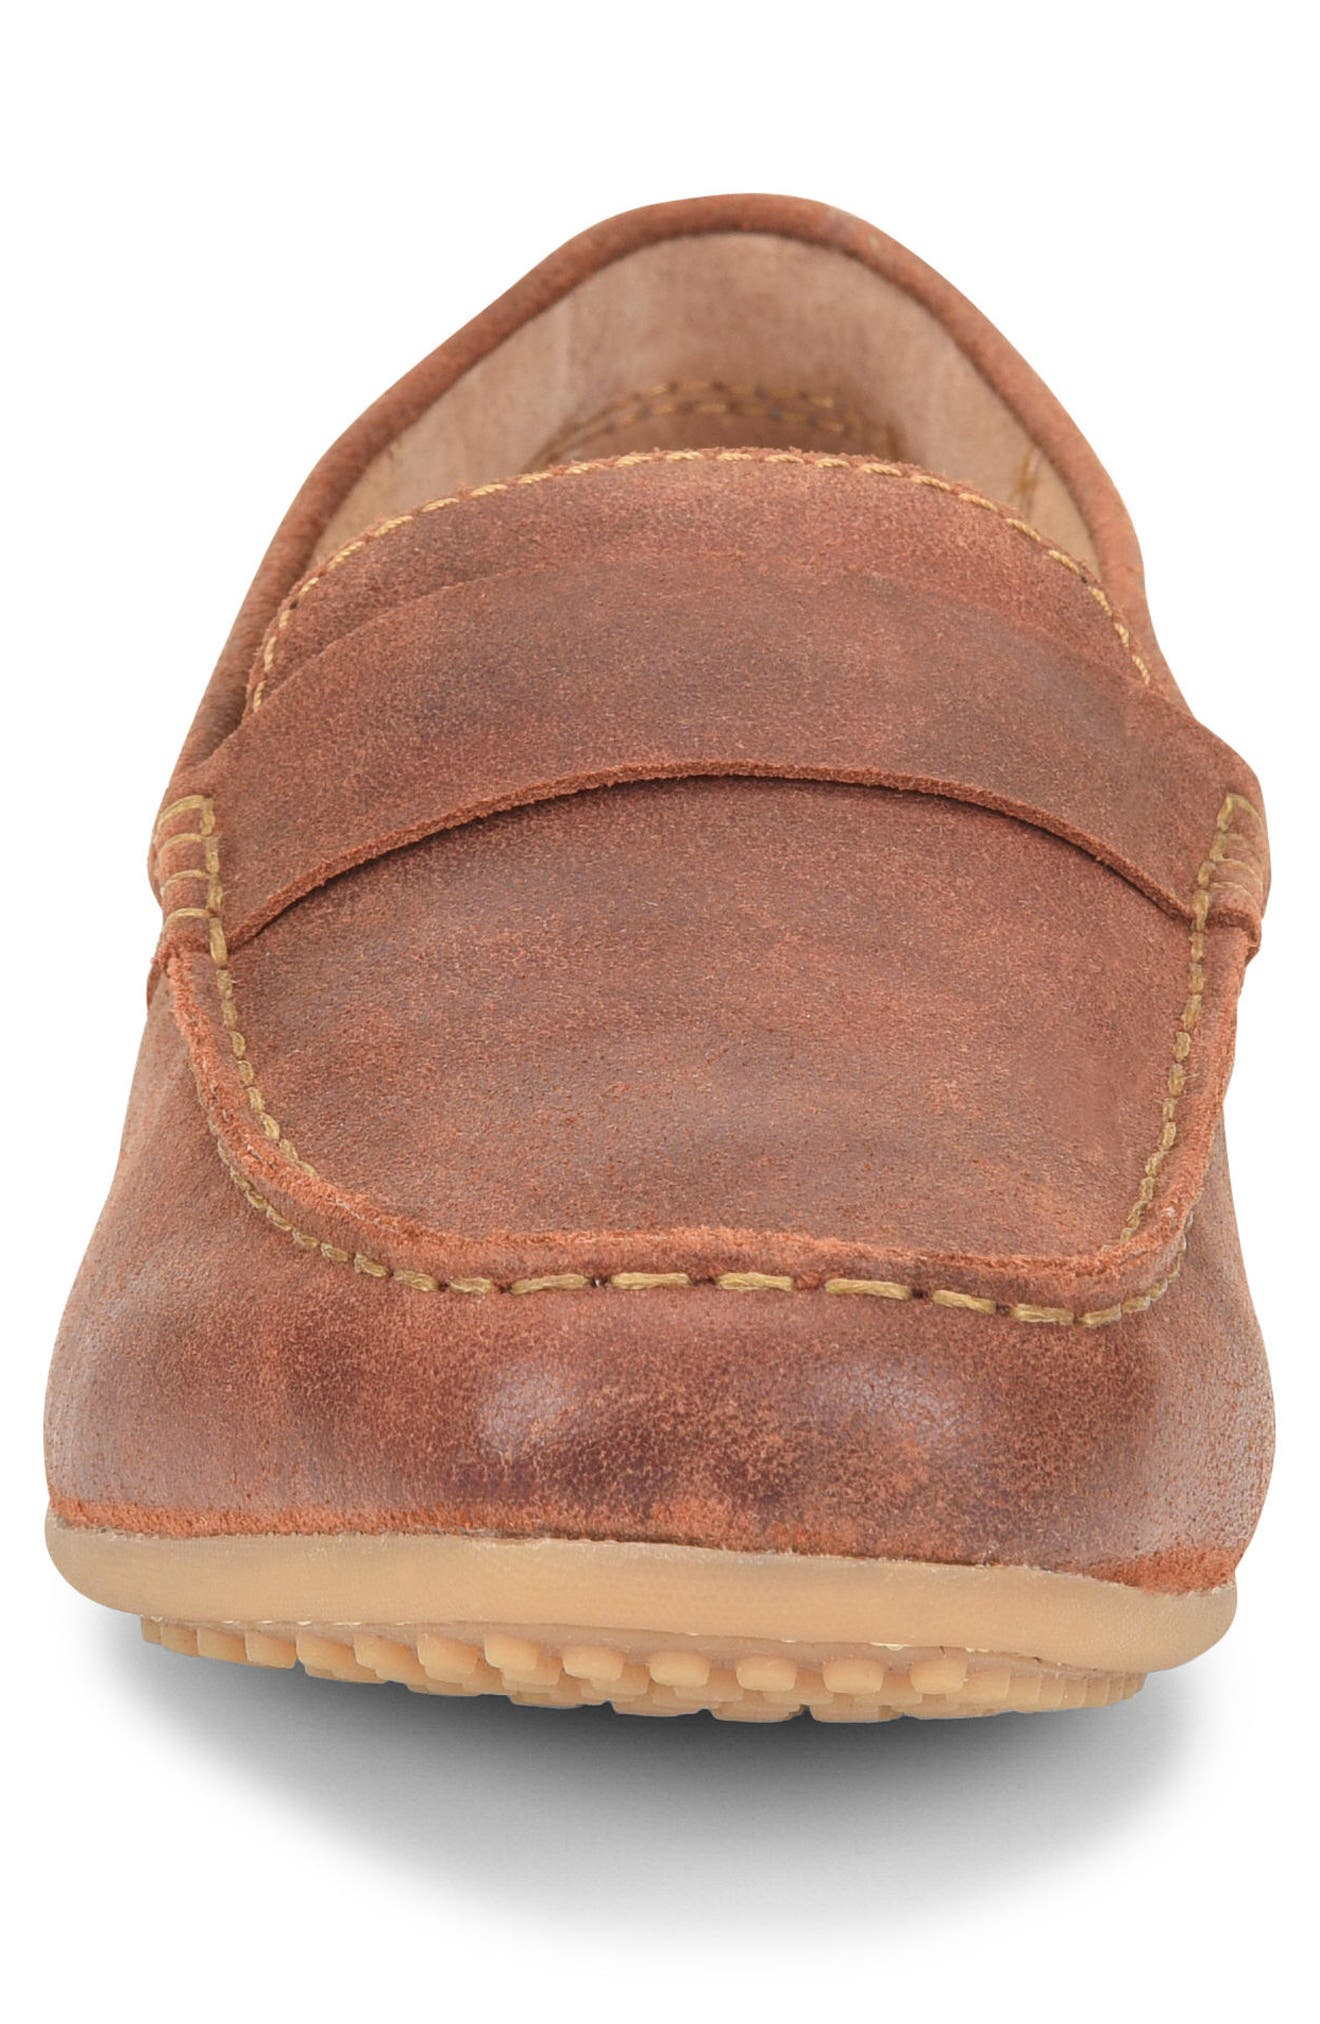 Ratner Driving Loafer,                             Alternate thumbnail 3, color,                             Rust Leather